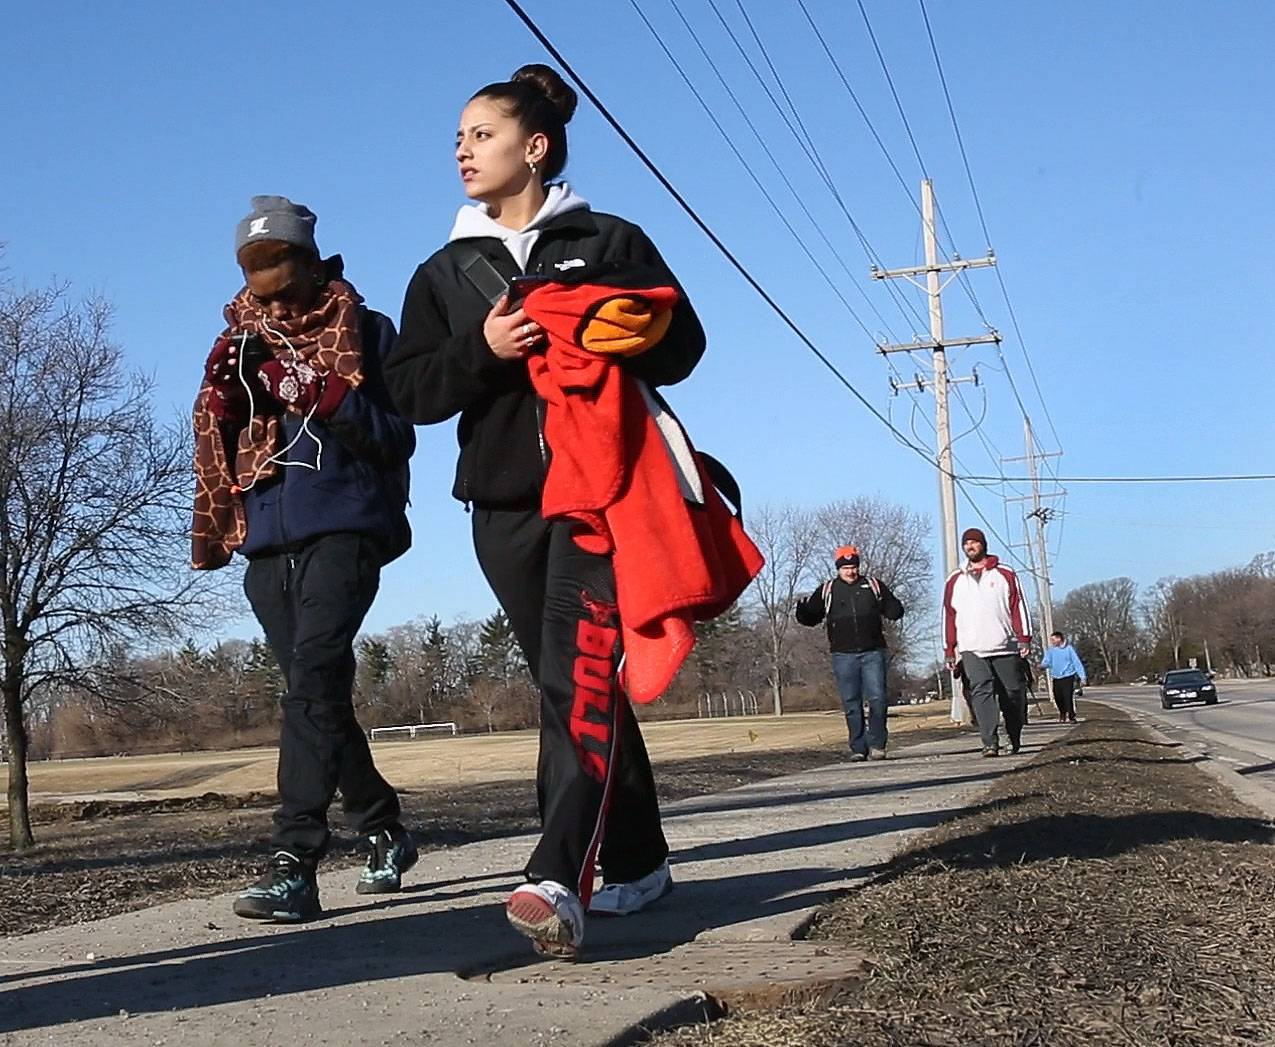 Sara Franklin, left and Janice Sanchez, right, seniors from East Aurora High School, make their way down Chicago Avenue in Lisle on Wednesday with other classmates, as they walk 38 miles to Soldier Field in Chicago. They are raising money to bring a former child soldier from Sierre Leone to speak at their school in April.